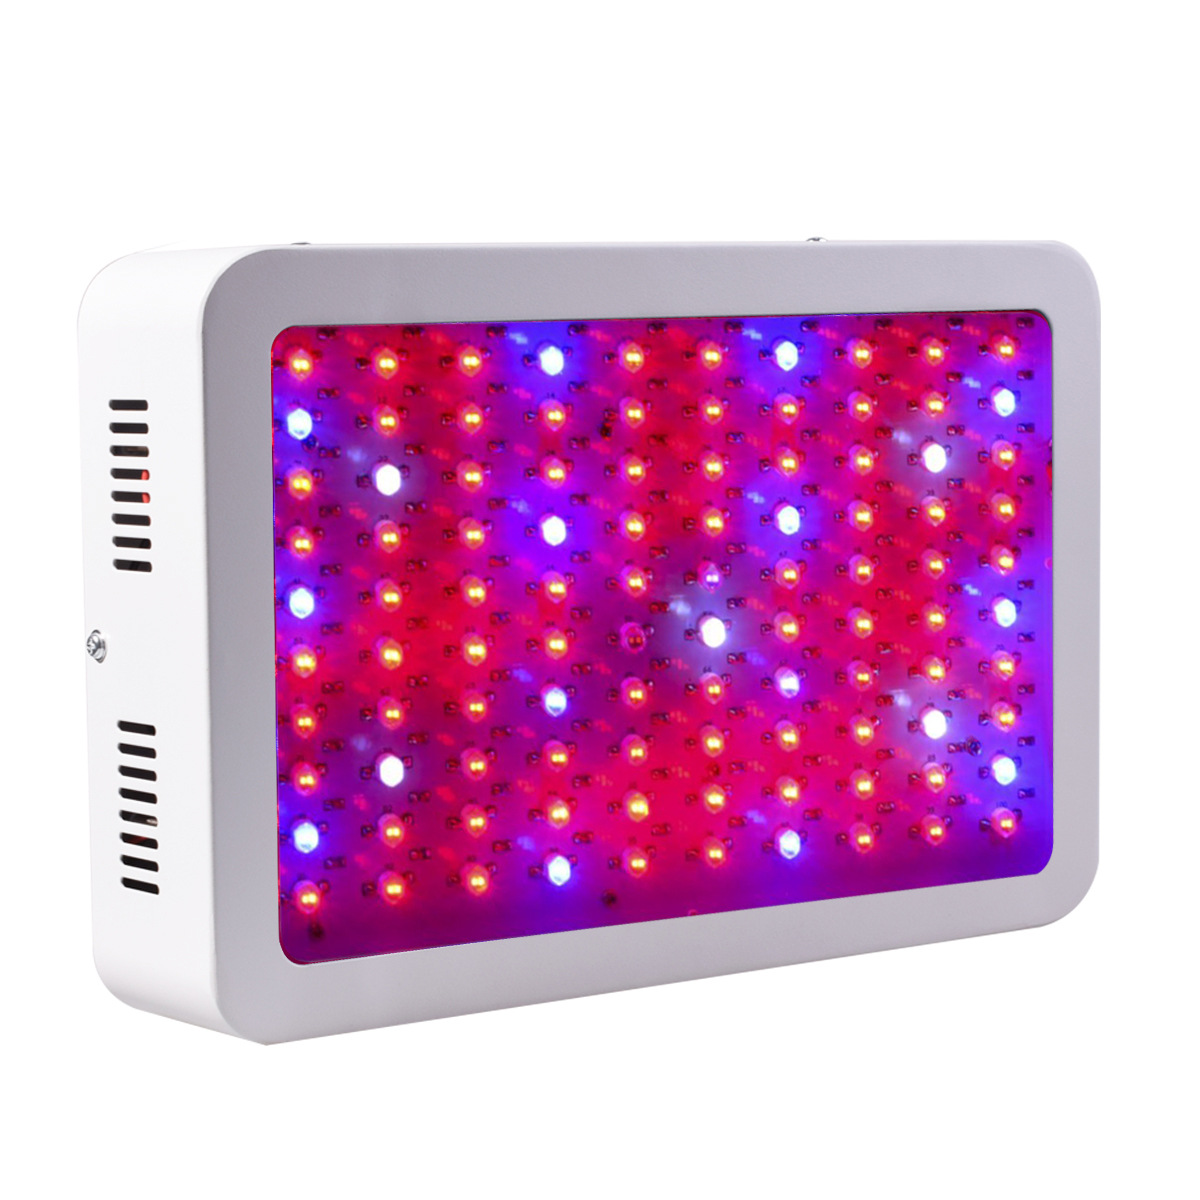 BestFire Double Chips 1500 W LED Grow Light 380-730nm Full Spectrum Led Grow Light Indoor Plant Flowering And Growth Plants aurora double drive 1500